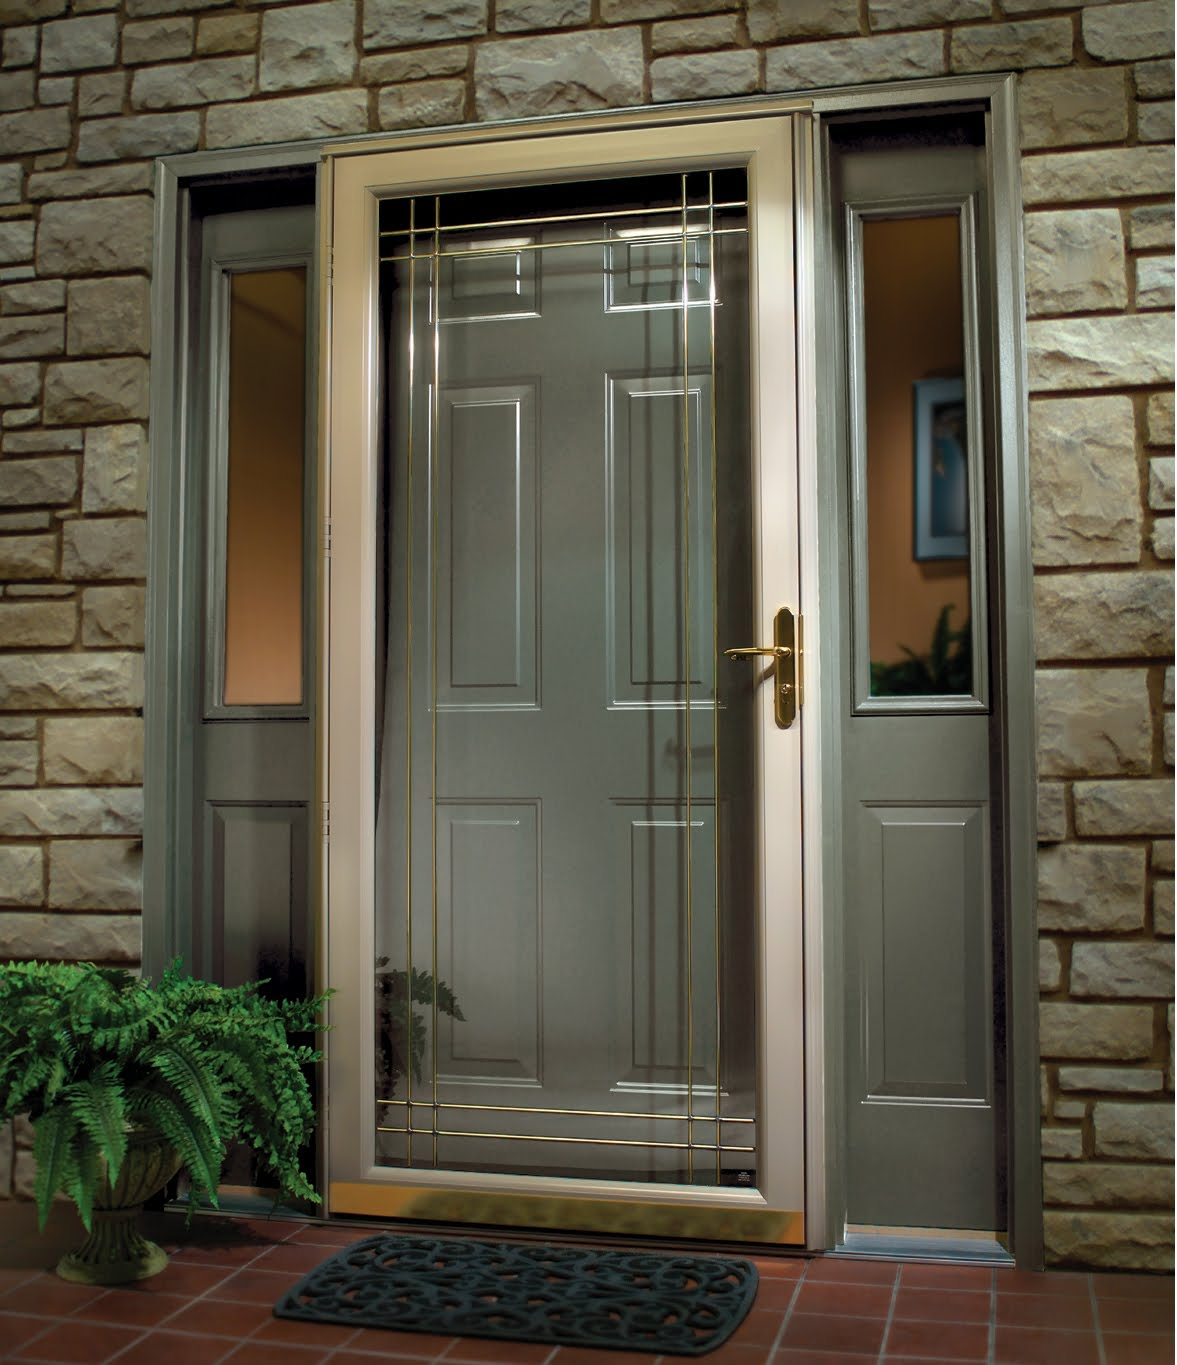 Door design ideas times news uk for Outer doors for homes